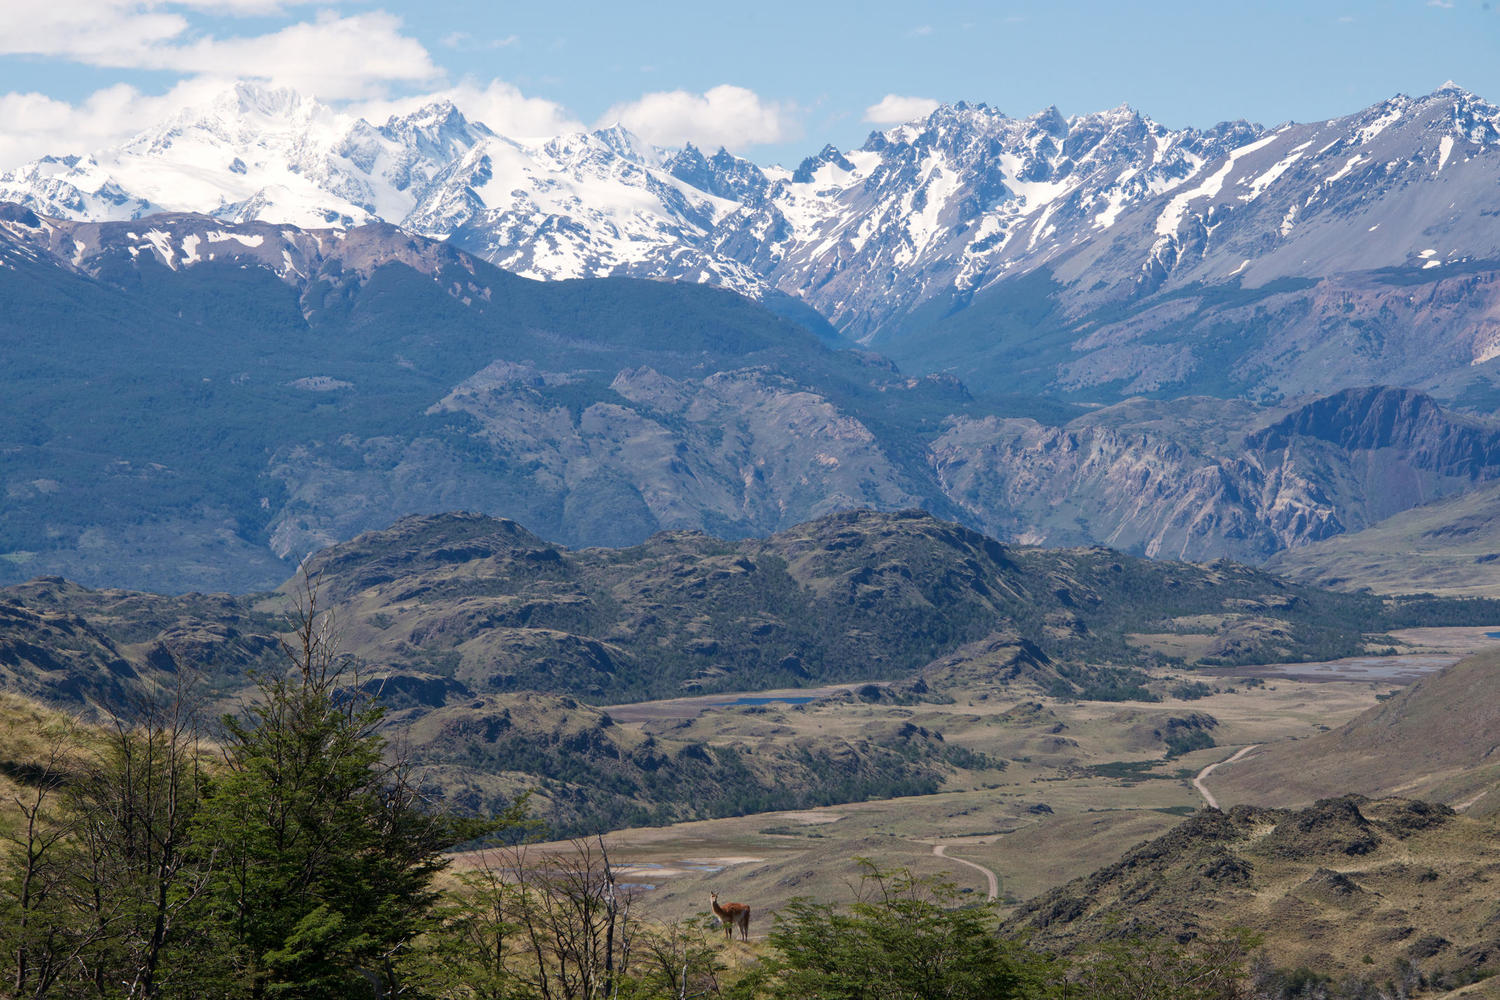 The snow-capped peaks of Parque Patagonia